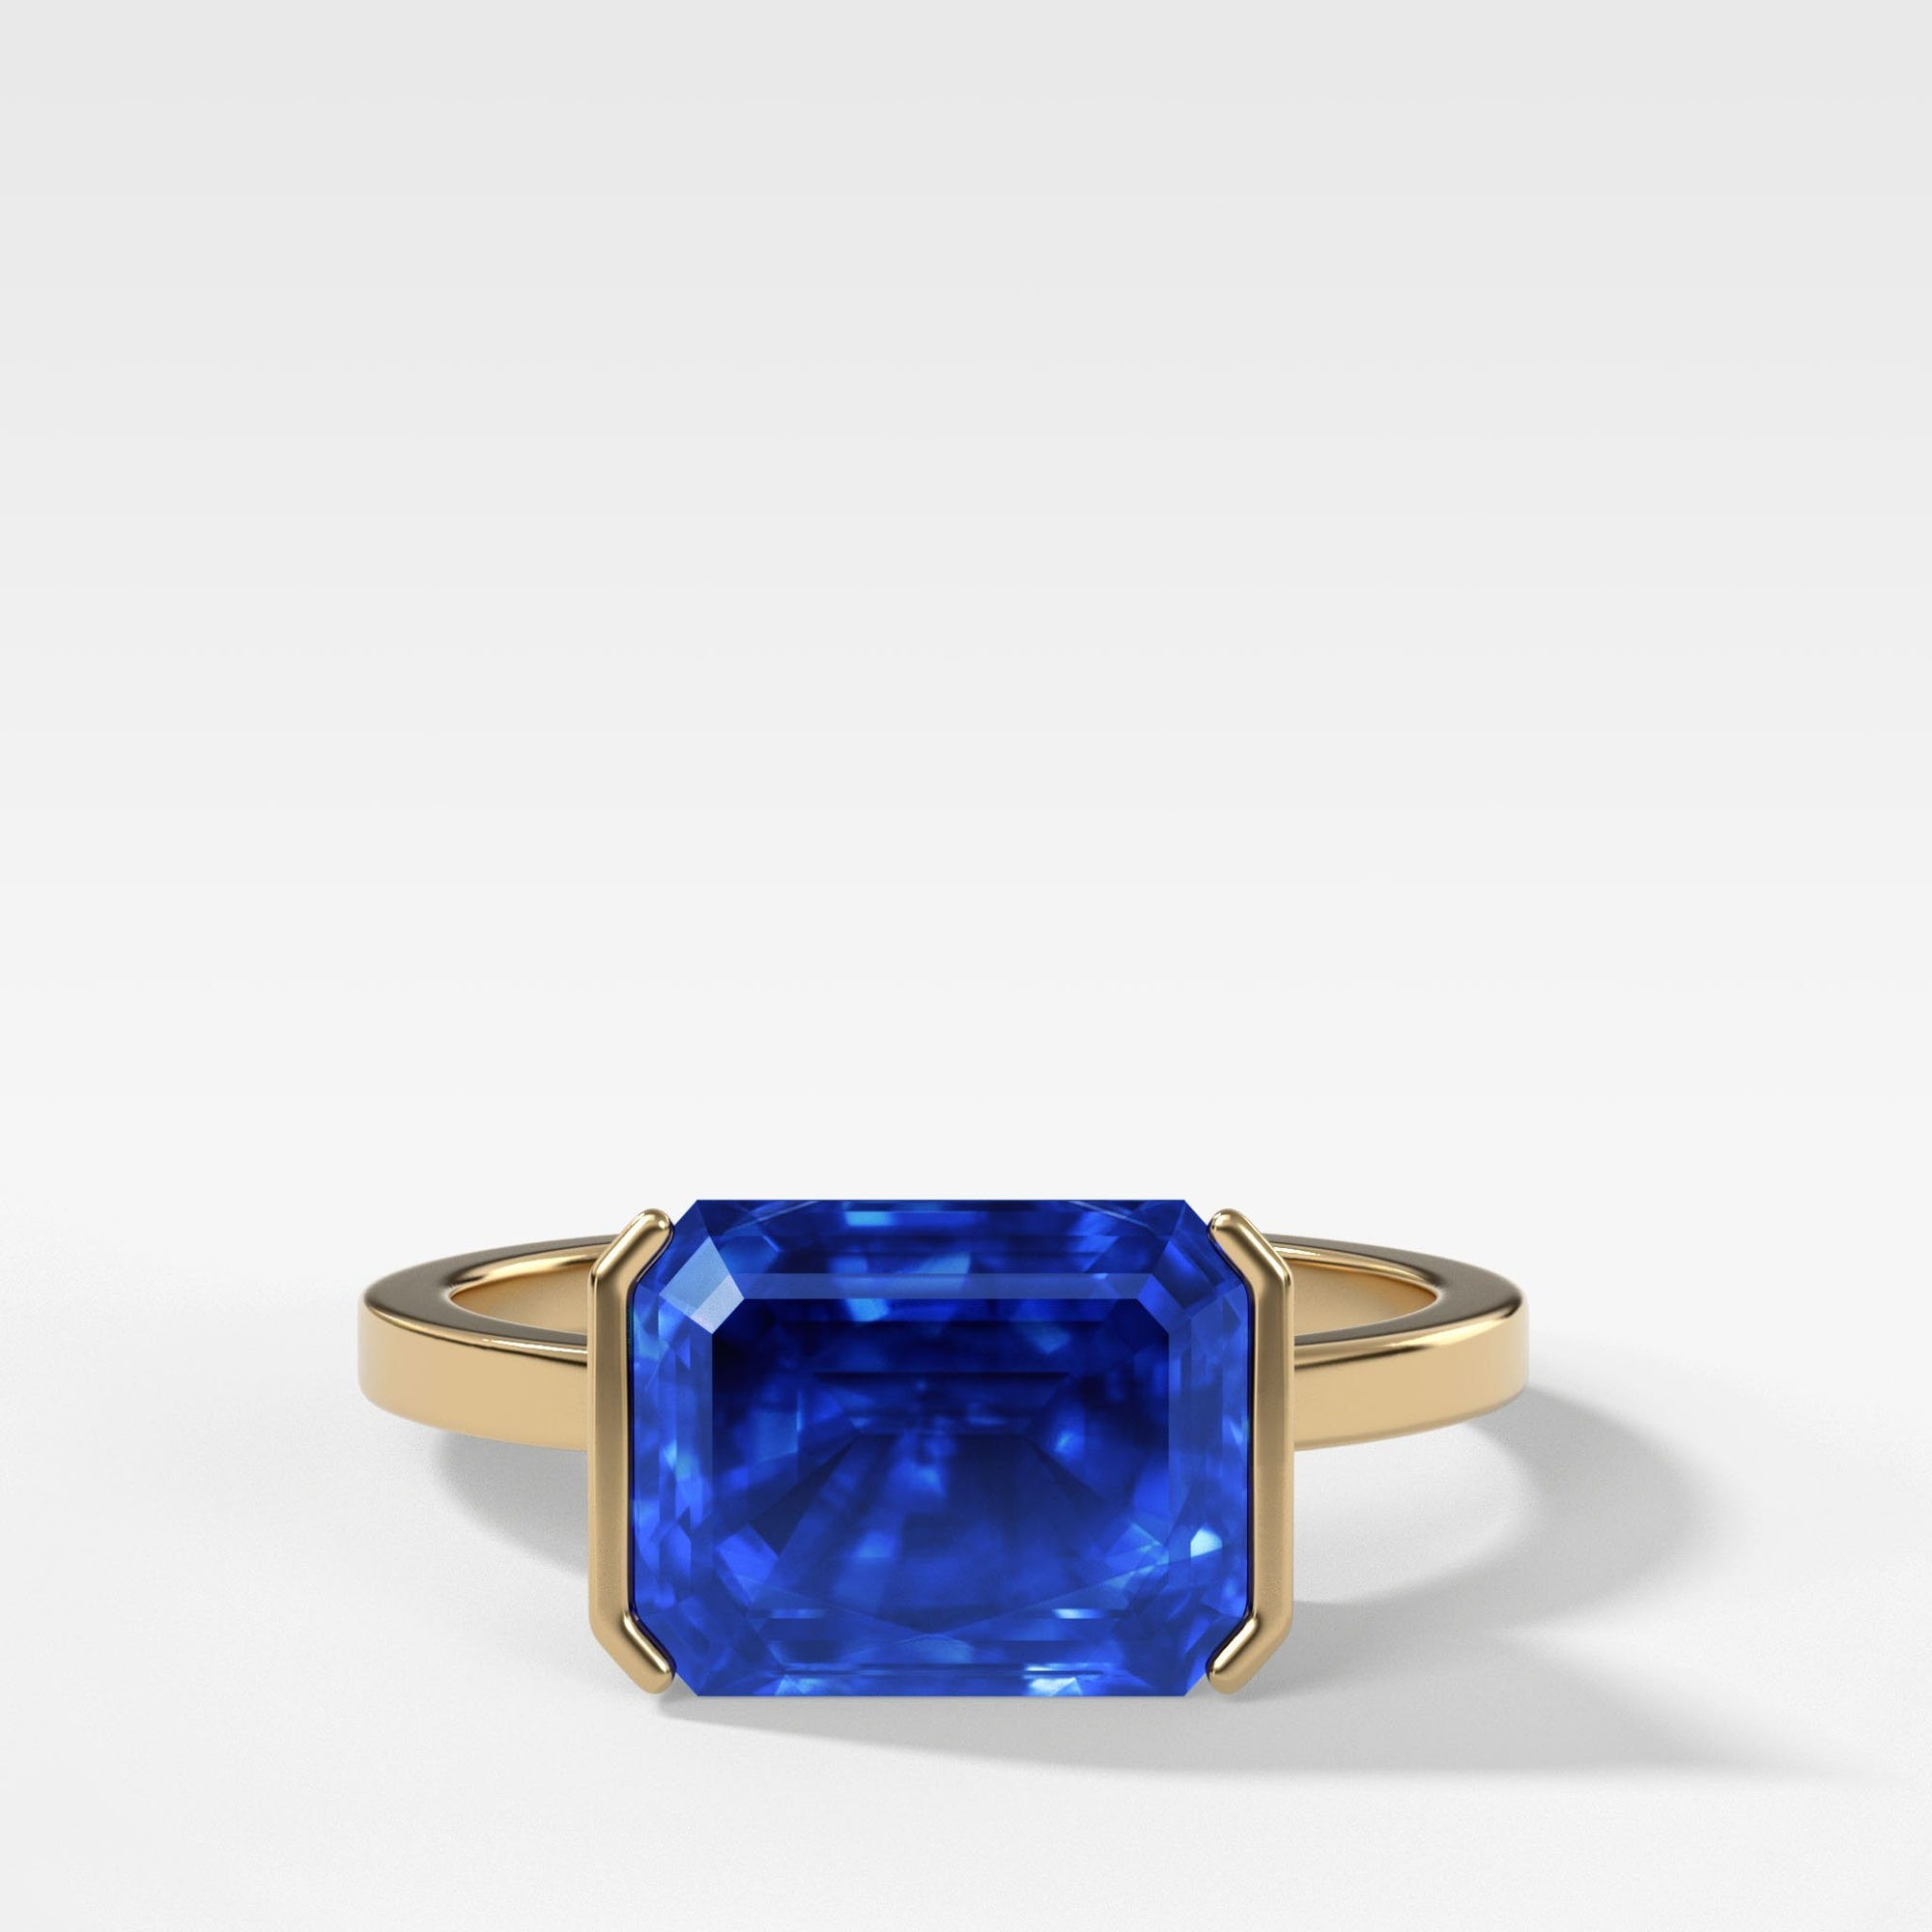 East West Half Bezel Solitaire with 2.99ct Emerald Ceylon Blue Sapphire in Yellow Gold by Good Stone